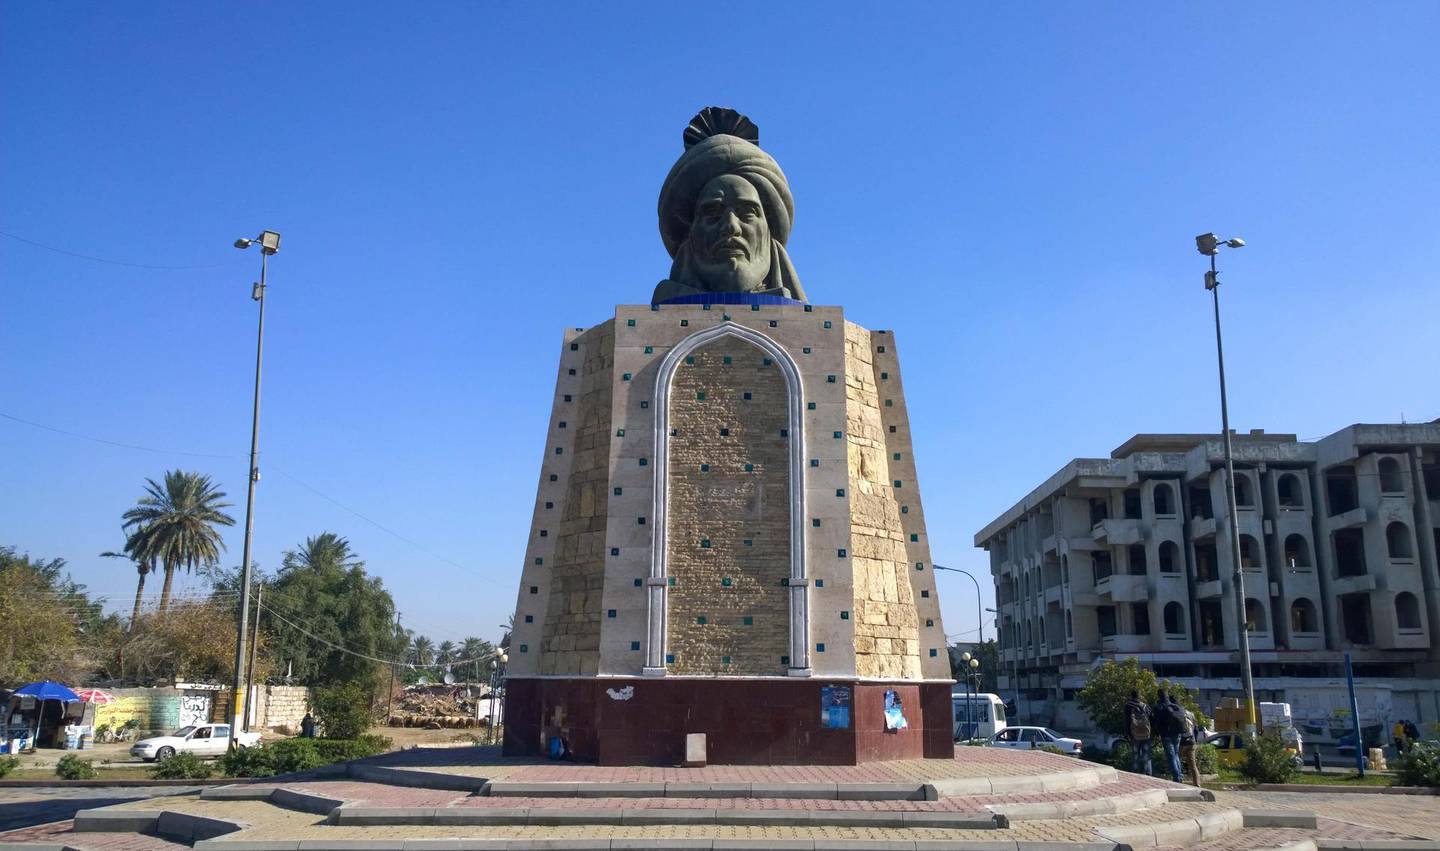 MGRFWP Statue of the Abbasid caliph Abu Jaafar Al Mansour Builder and founder of the city of Baghdad, This statue is located  In the Mansour district. Alamy